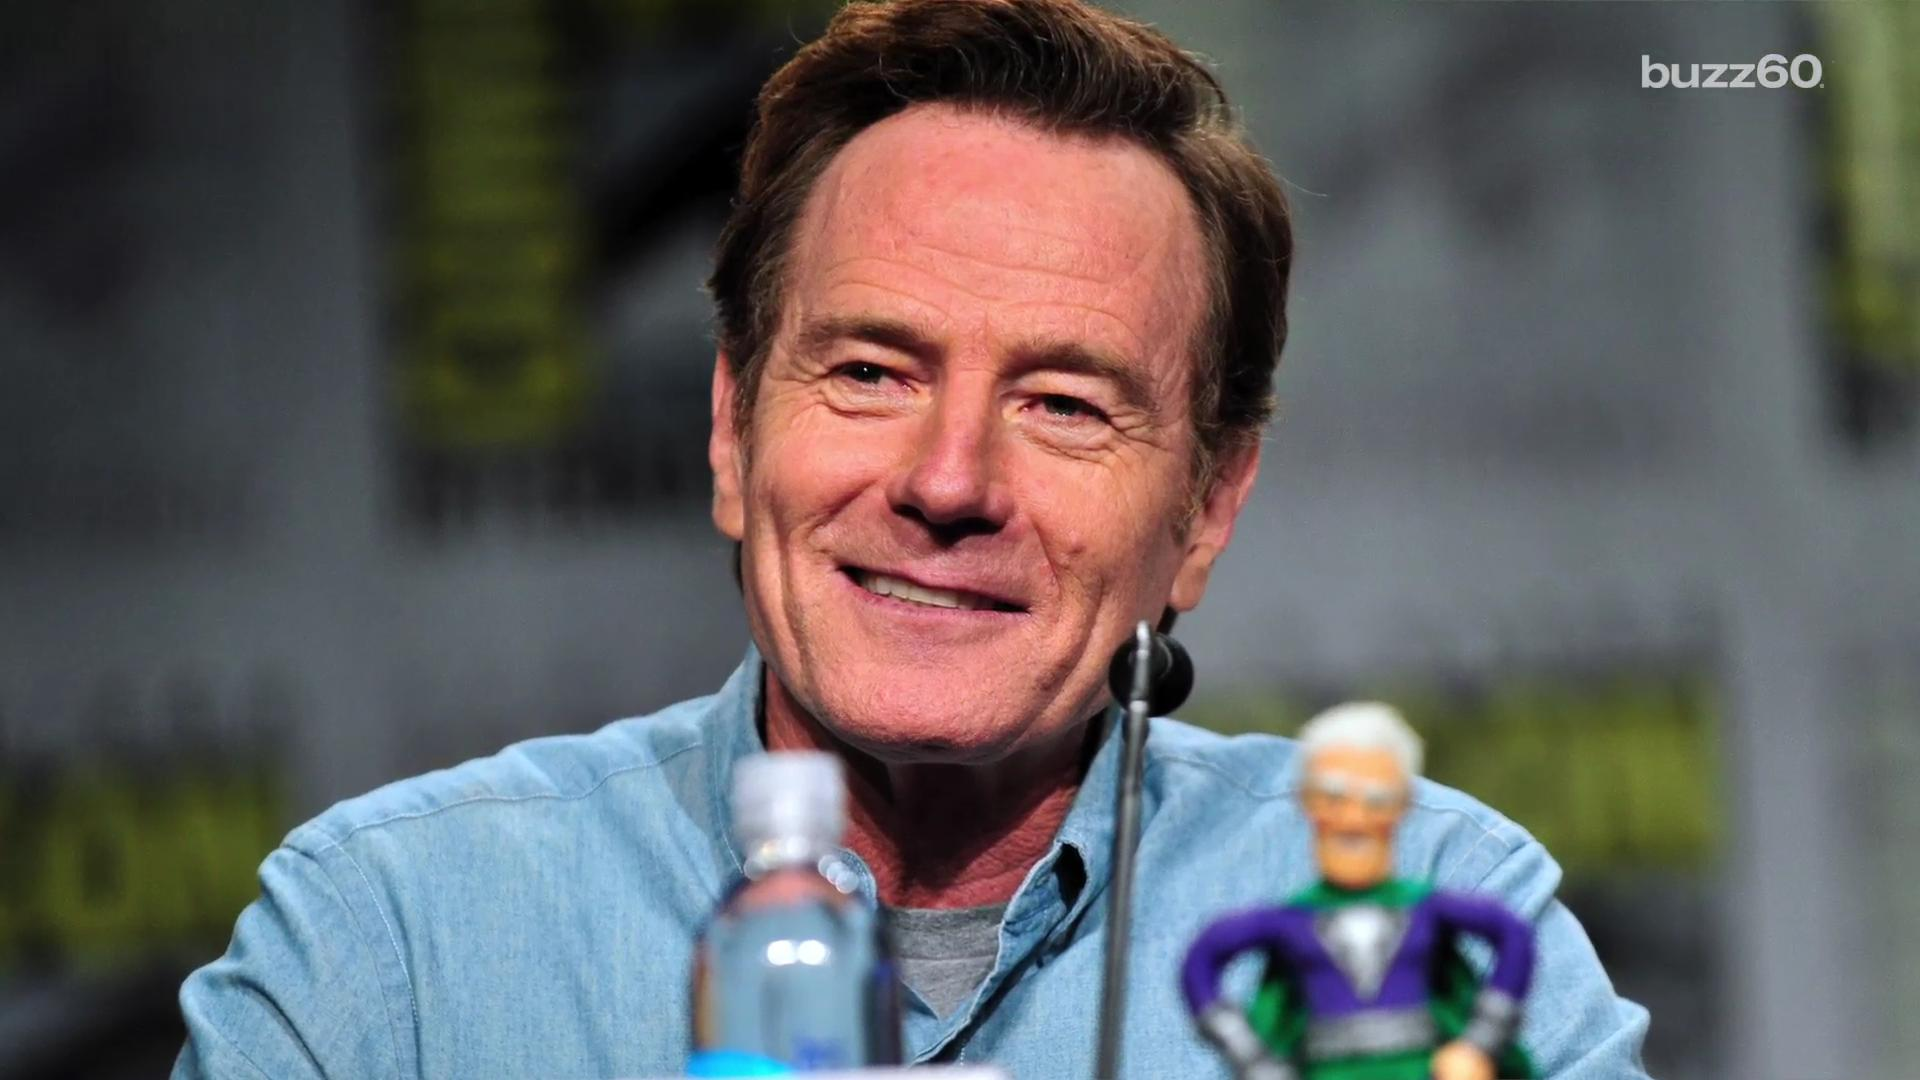 Bryan Cranston says being famous is like being pregnant